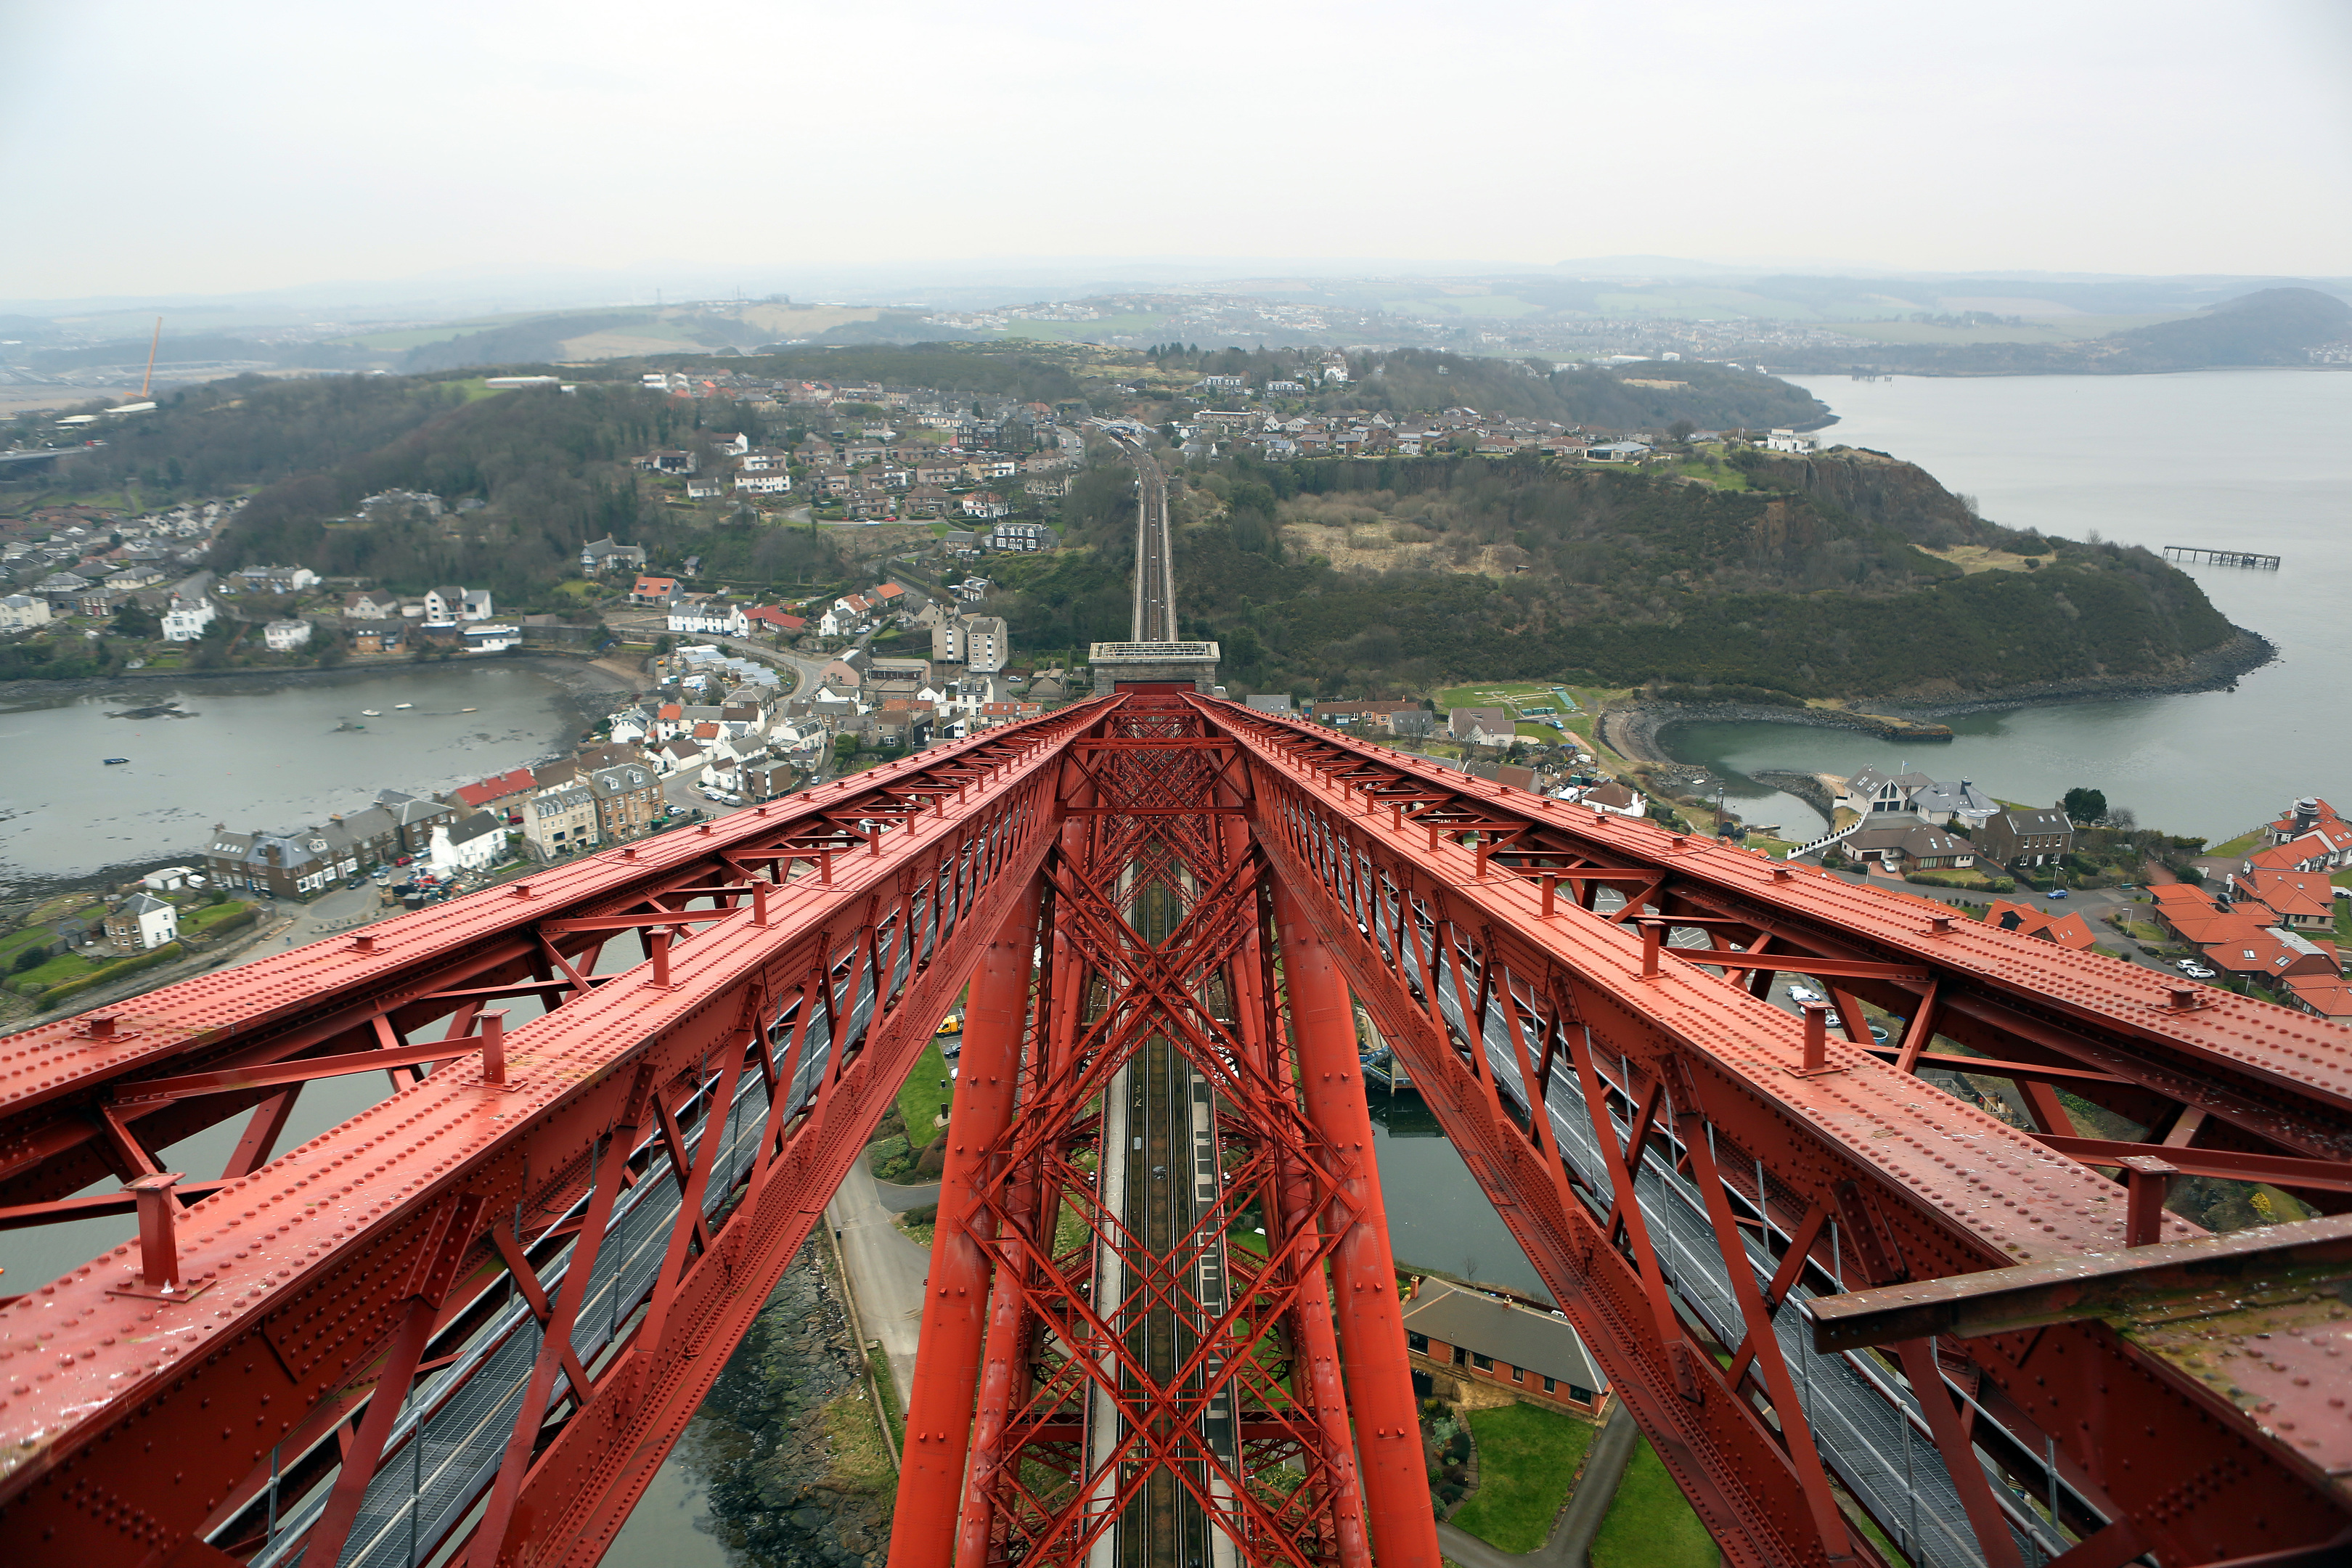 View from the South Tower of the Forth Rail Bridge looking north.